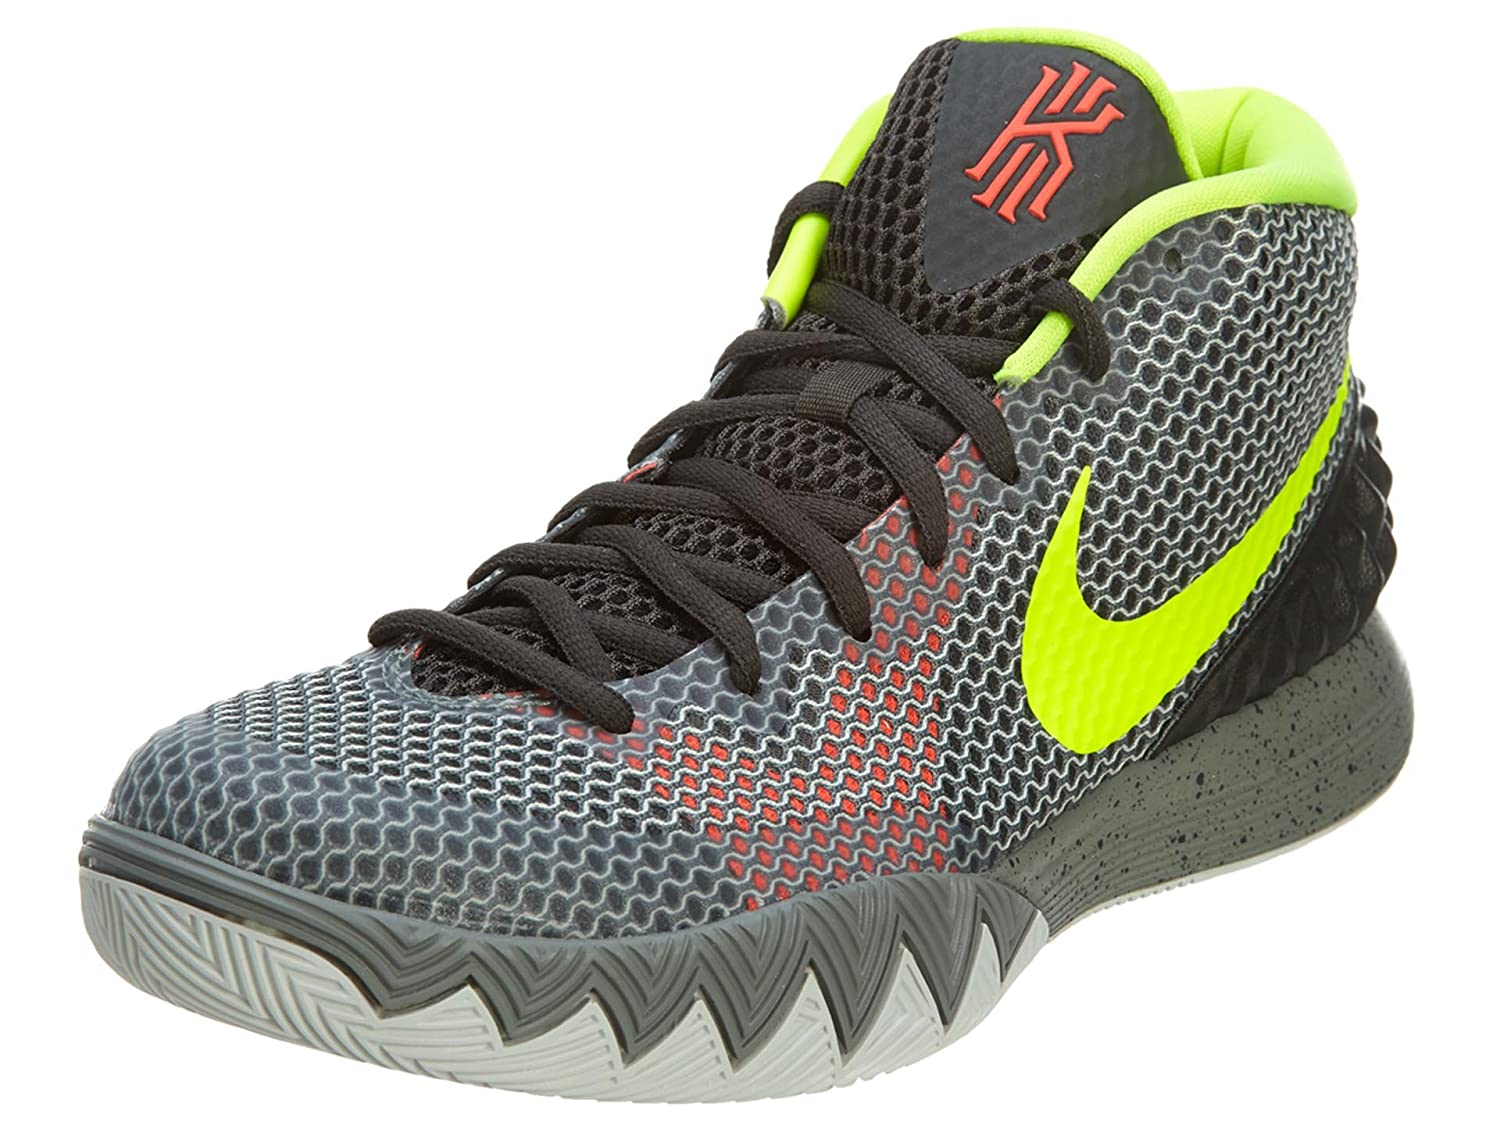 uk availability f7746 9f826 Amazon.com  Nike Kyrie 1 Mens Basketball Trainers 705277 Sneakers Shoes   Basketball